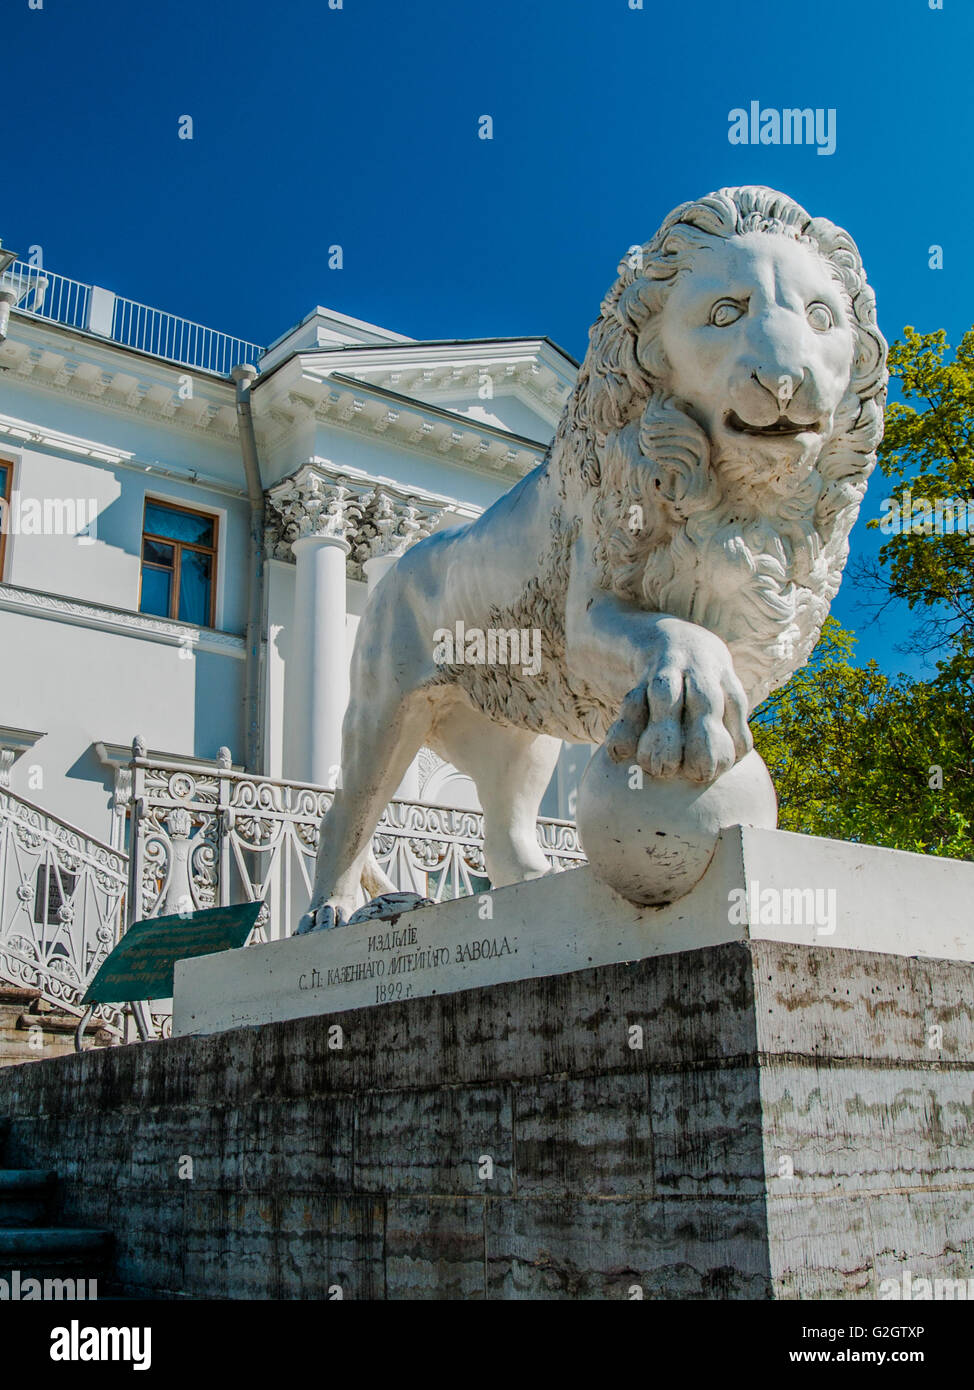 The sculpture of stone lion near the White Palace in the city park - Stock Image